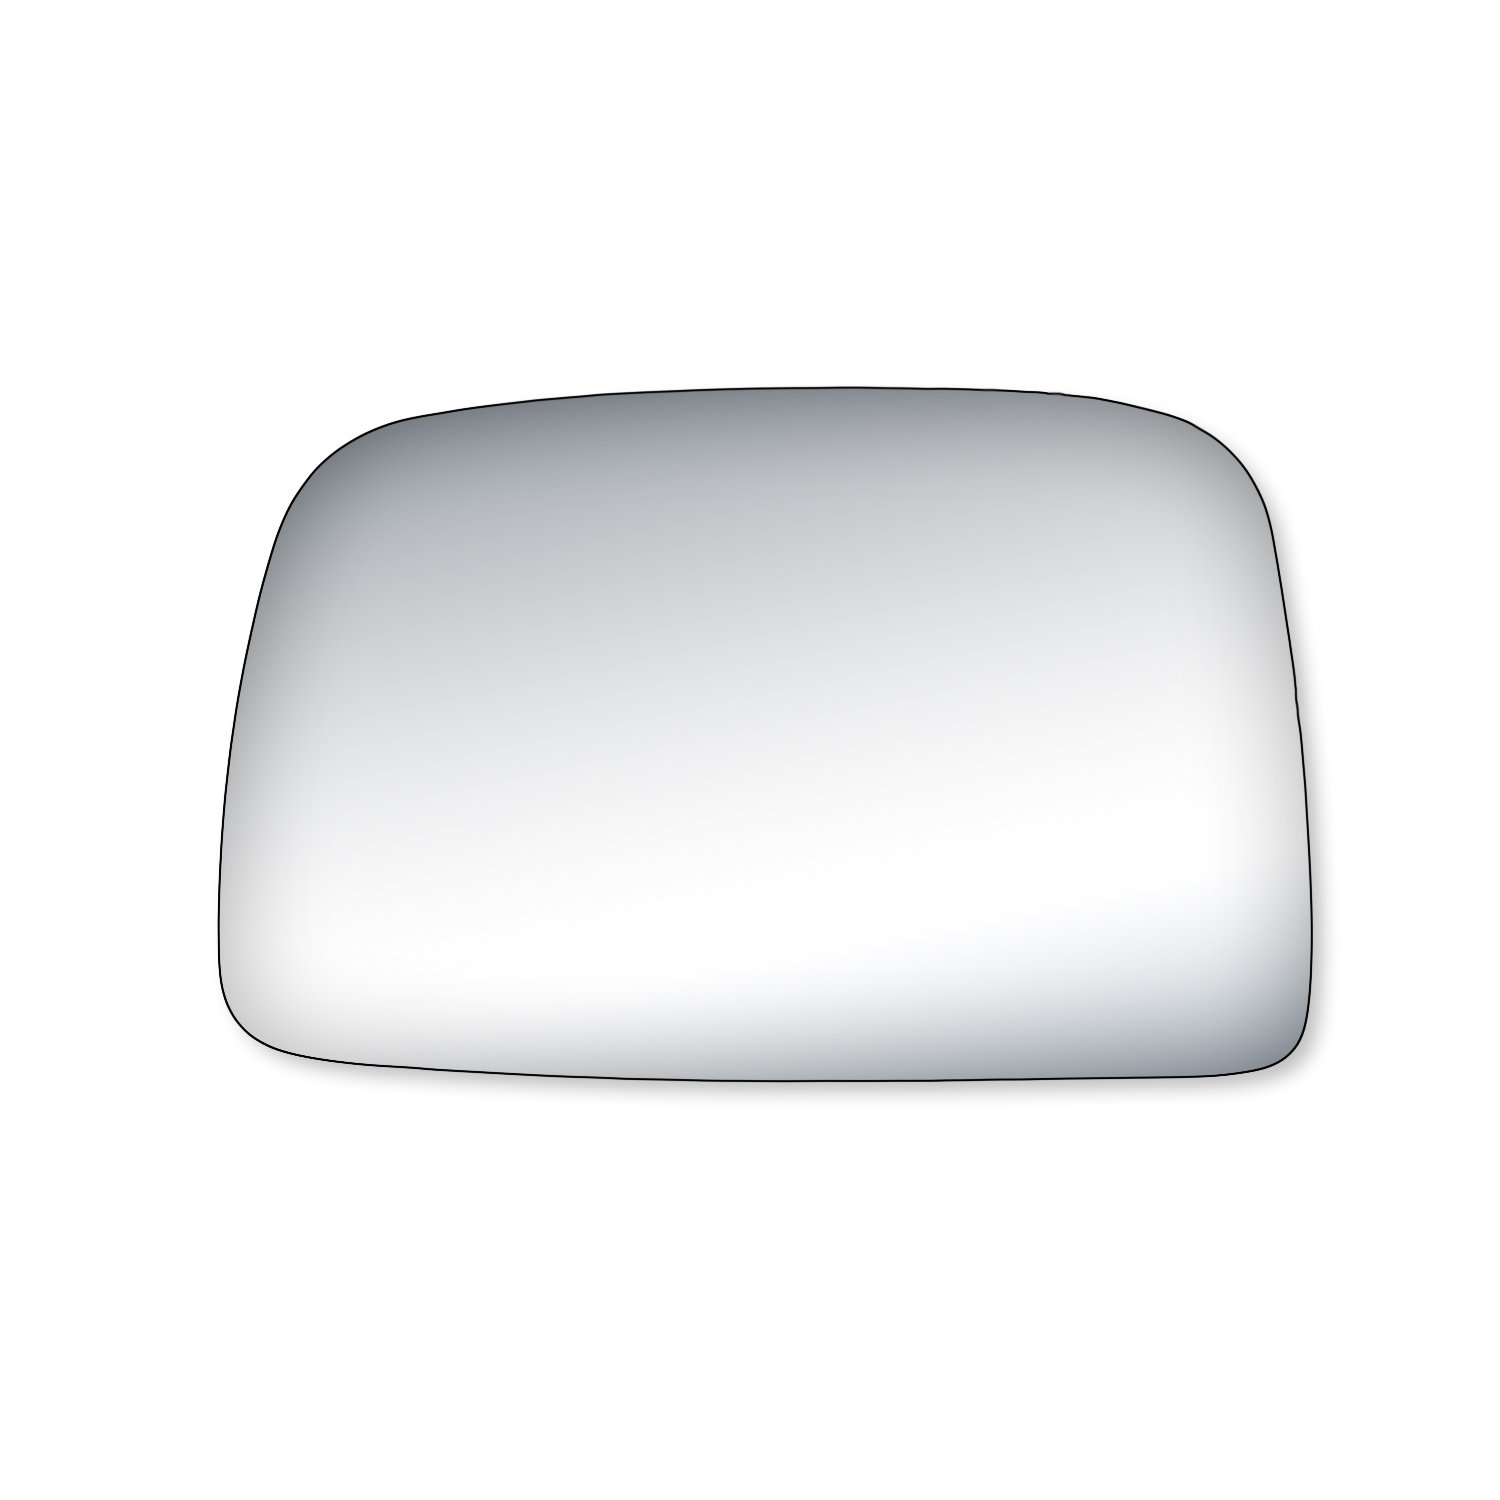 51-Hleii5KL._SL1500_ Cool toyota Camry 2008 Driver Side Mirror Cars Trend